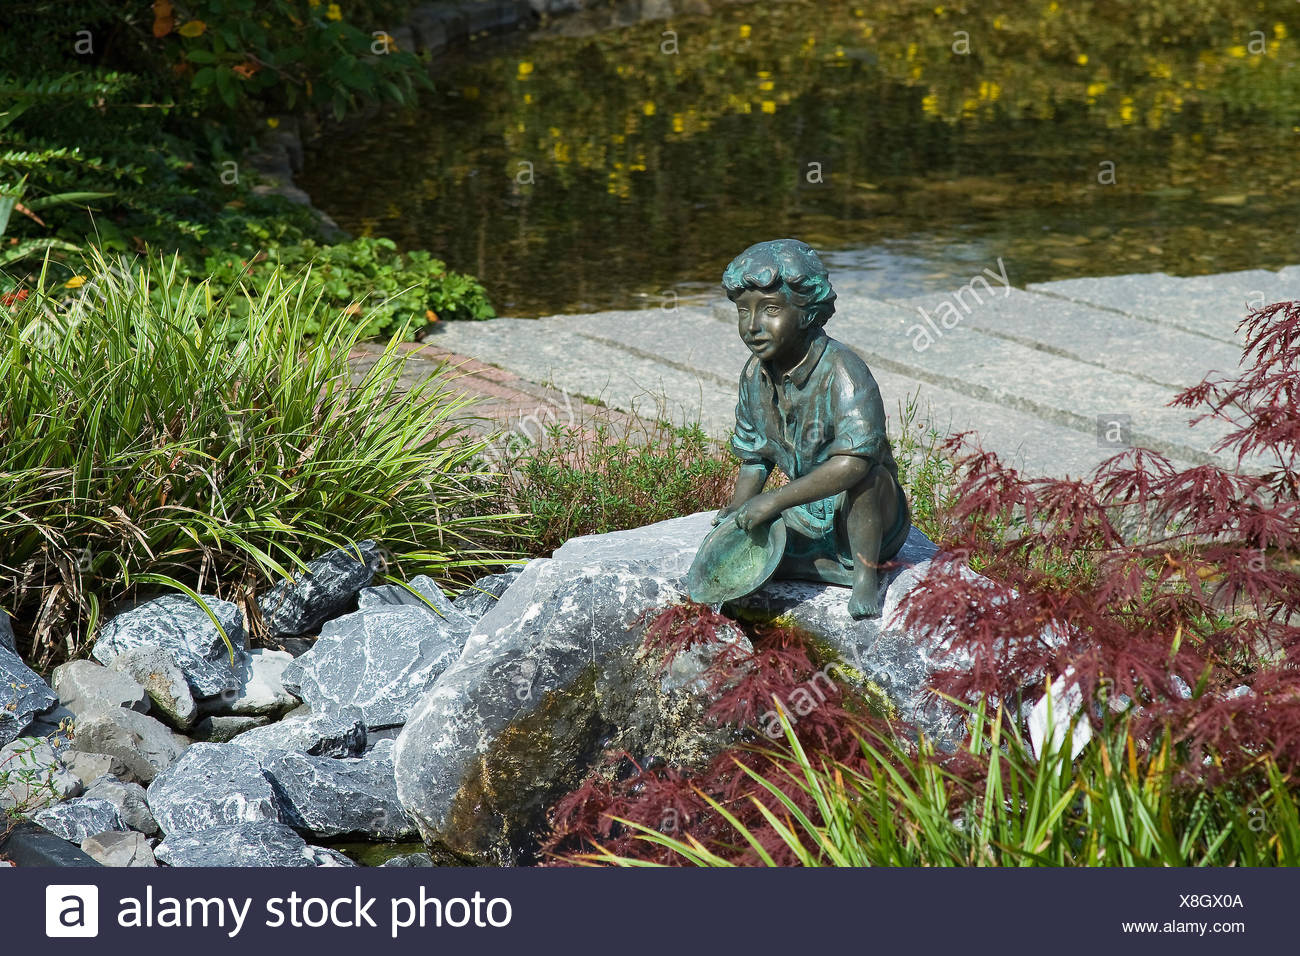 garden beds flower flowers plant youth fresh water pond water gardens flower - Stock Image